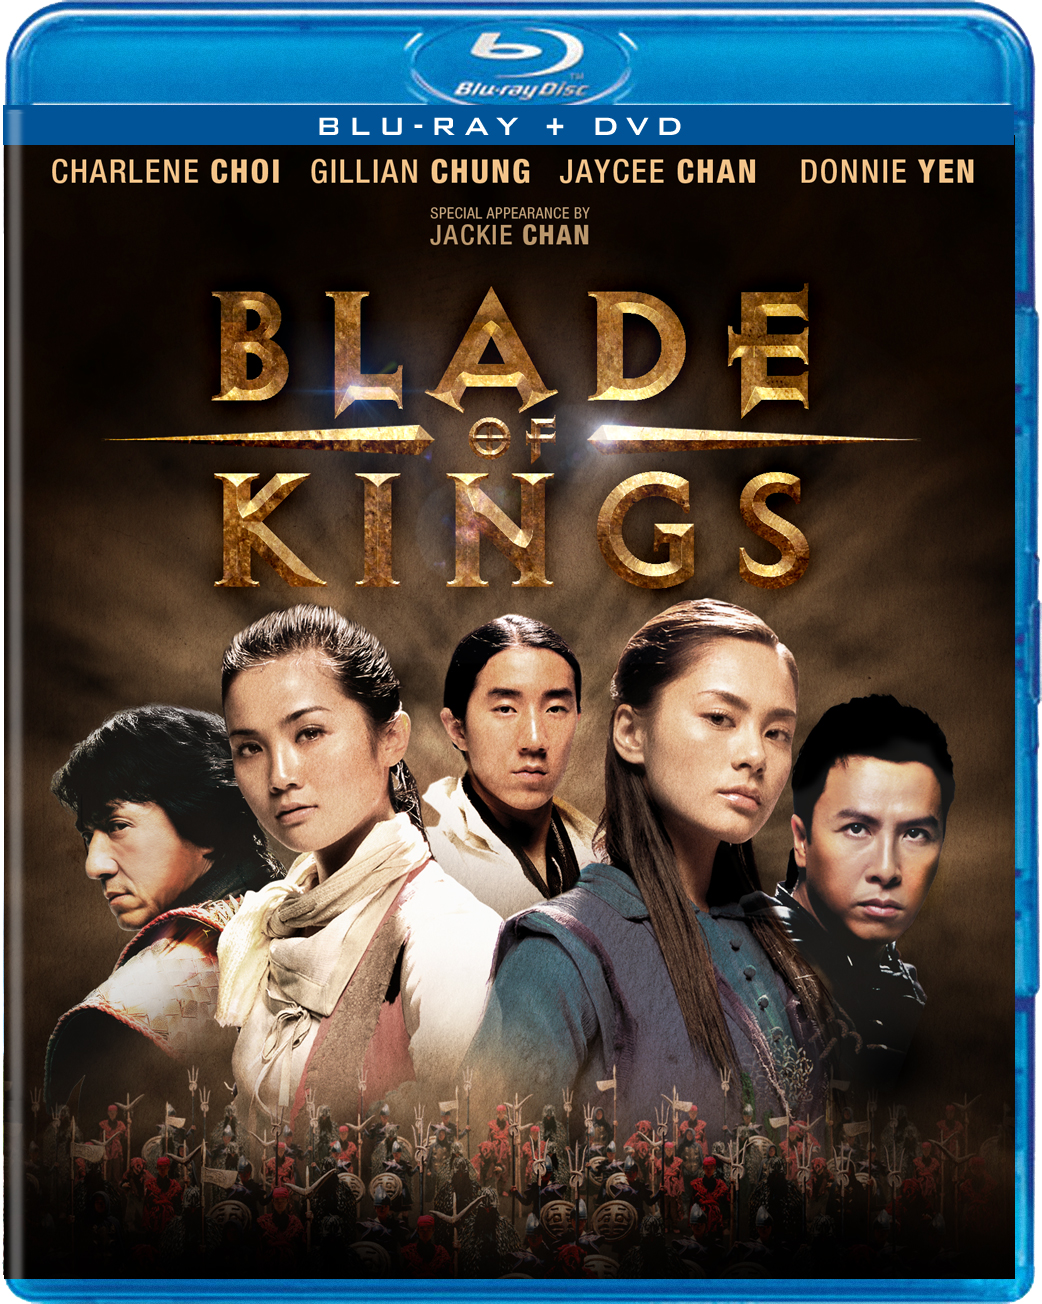 Blade of Kings quot  Blu-Ray Review - Written by Anthony TGillian Chung Blade Of Kings